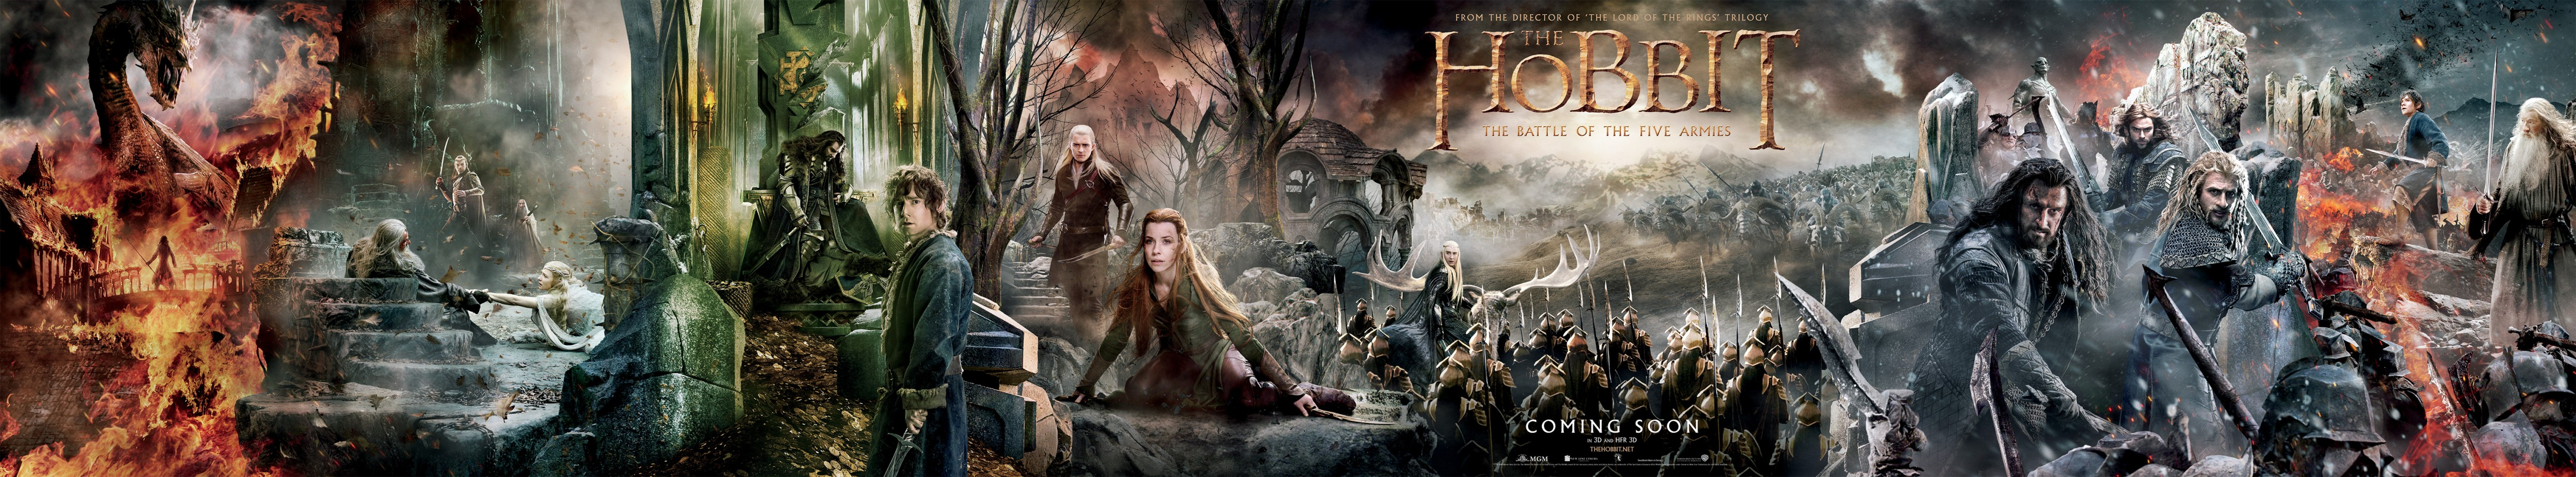 The Hobbit The Battle of the Five Armies-Official Poster Banner PROMO-16SETEMBRO2014